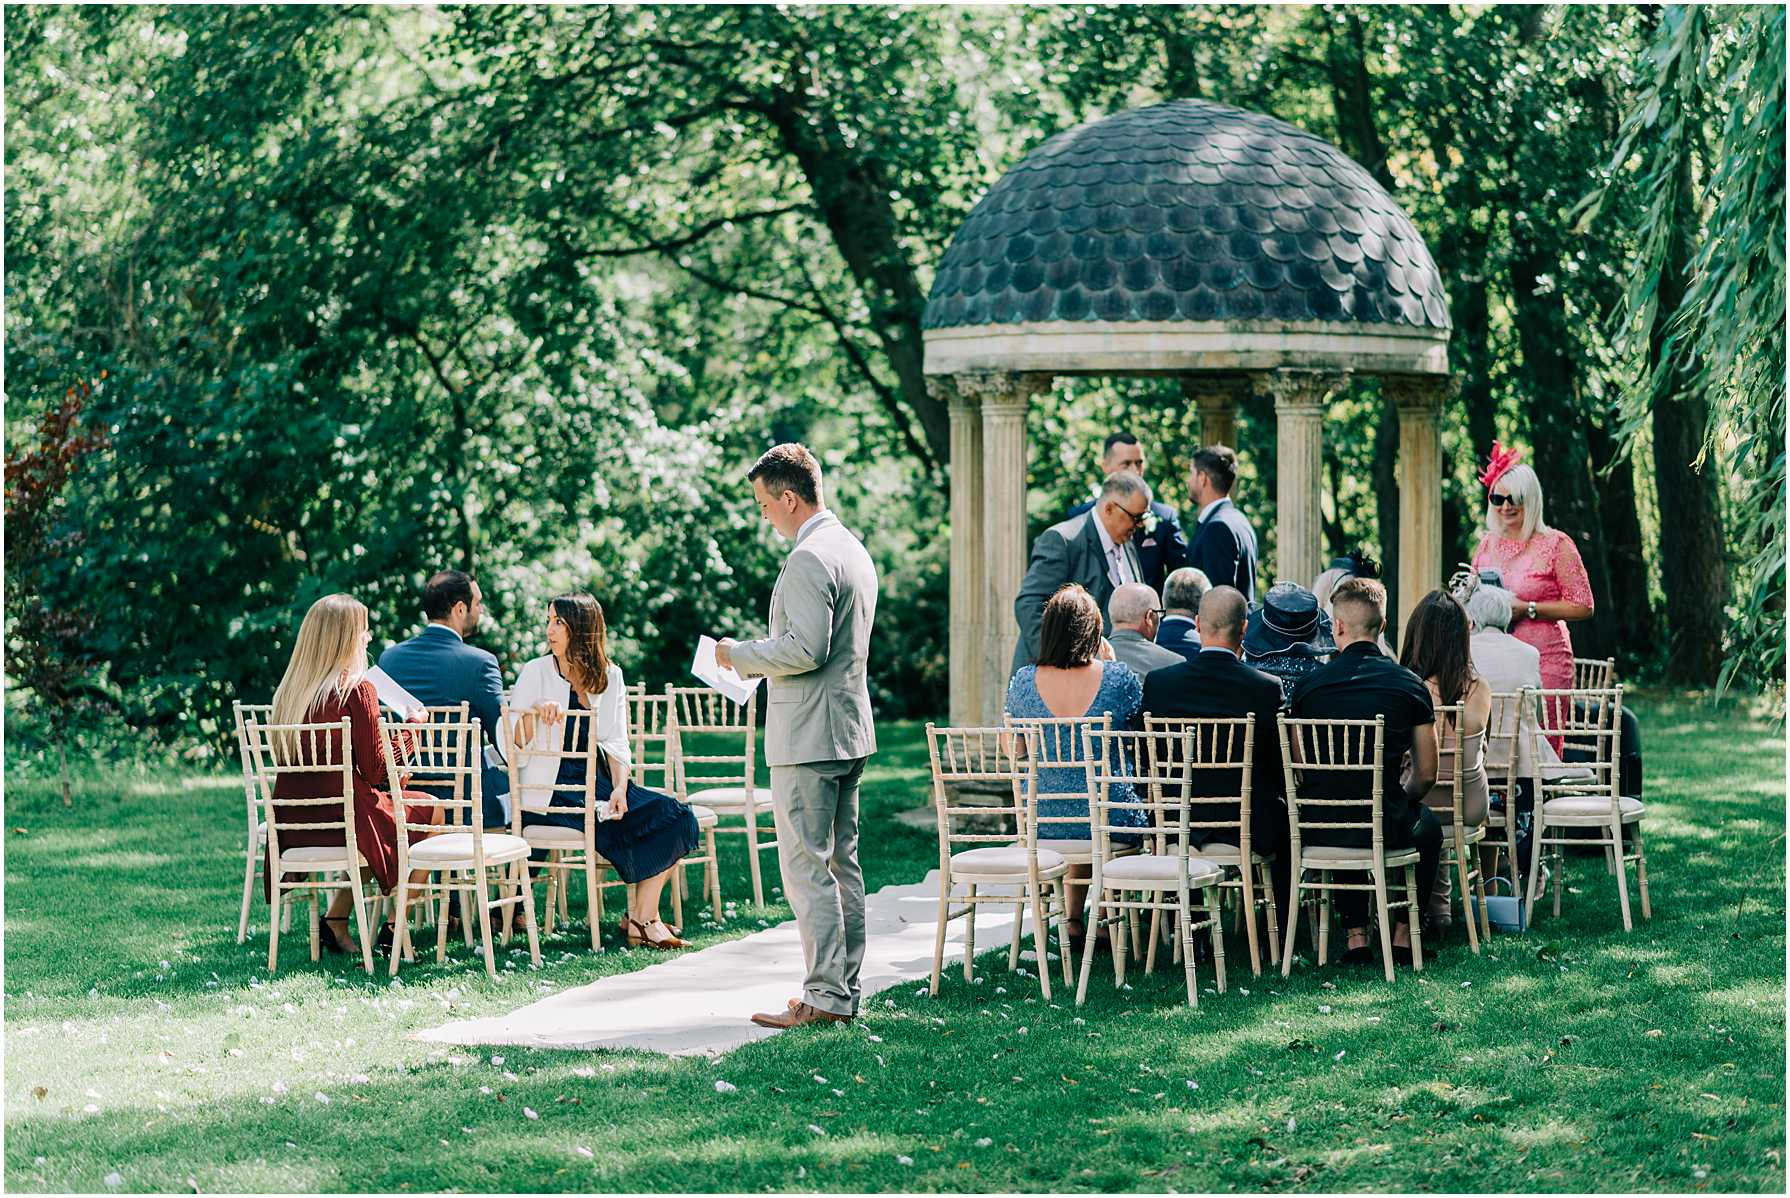 guests gathering for outdoor ceremony at the old swan and minster mill